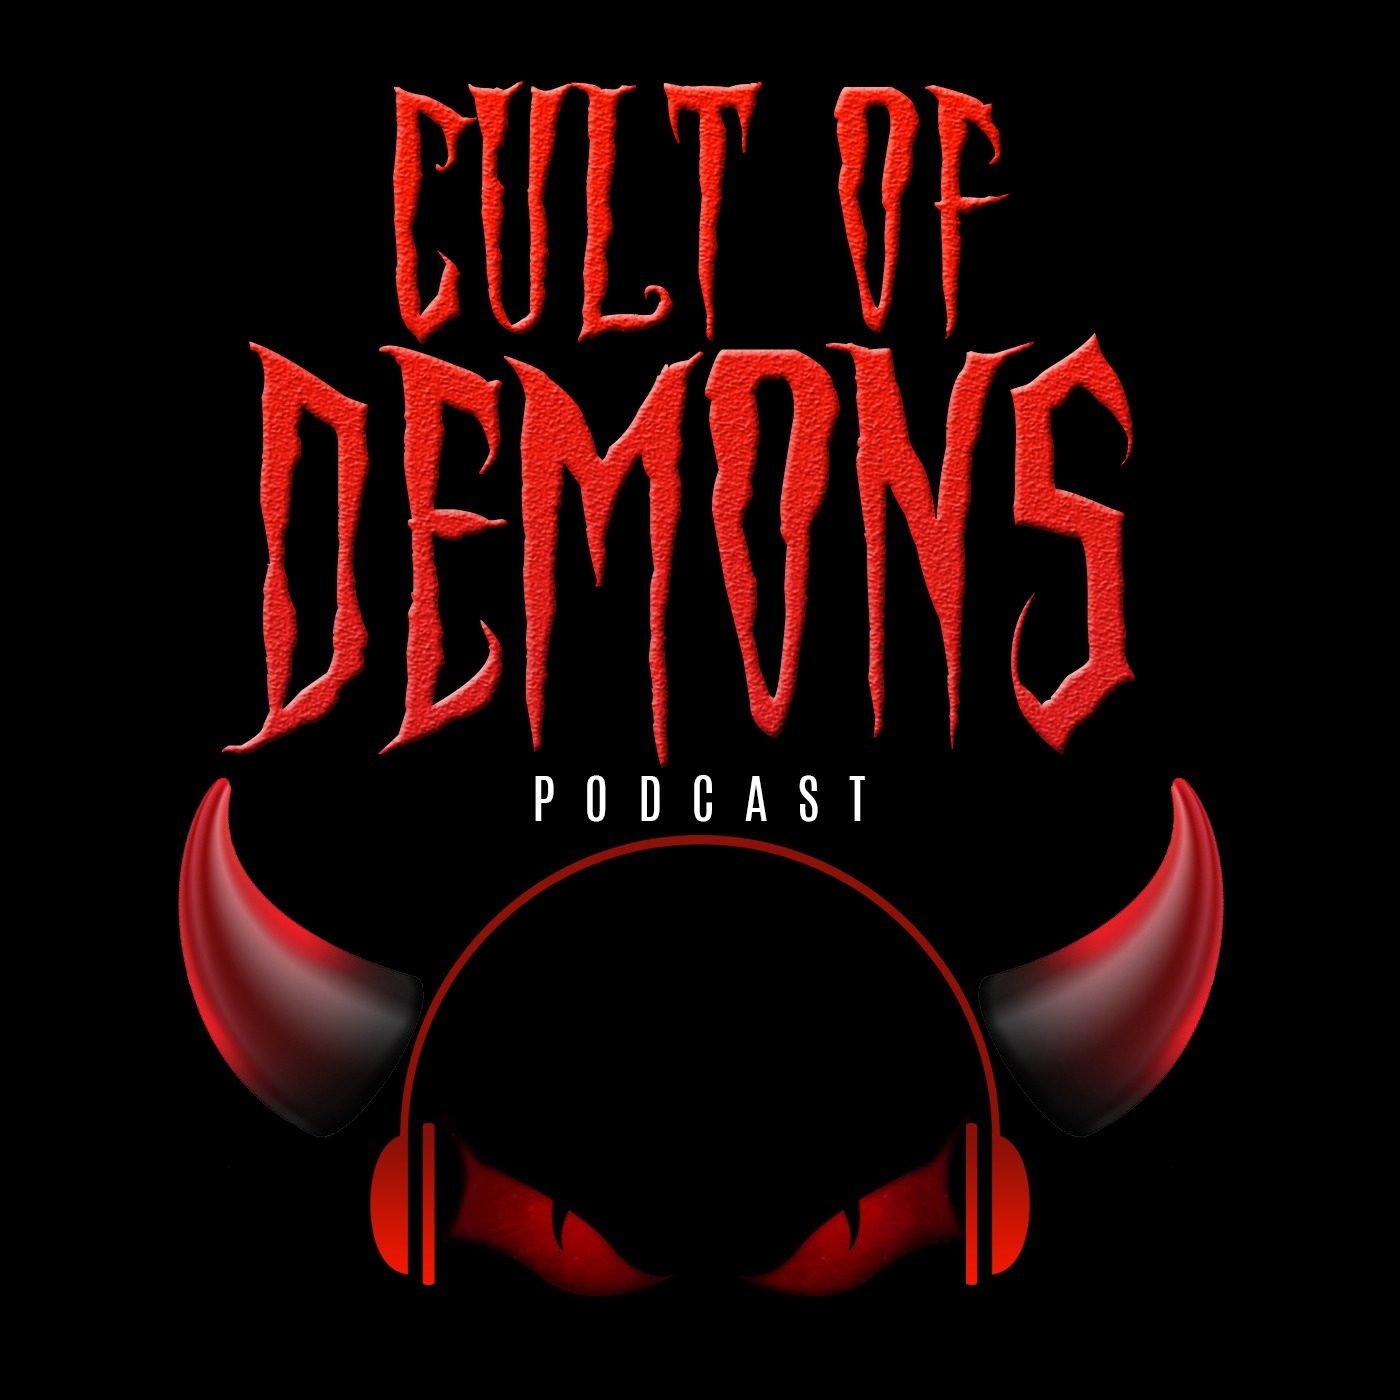 Cult of Demons Podcast  Copy